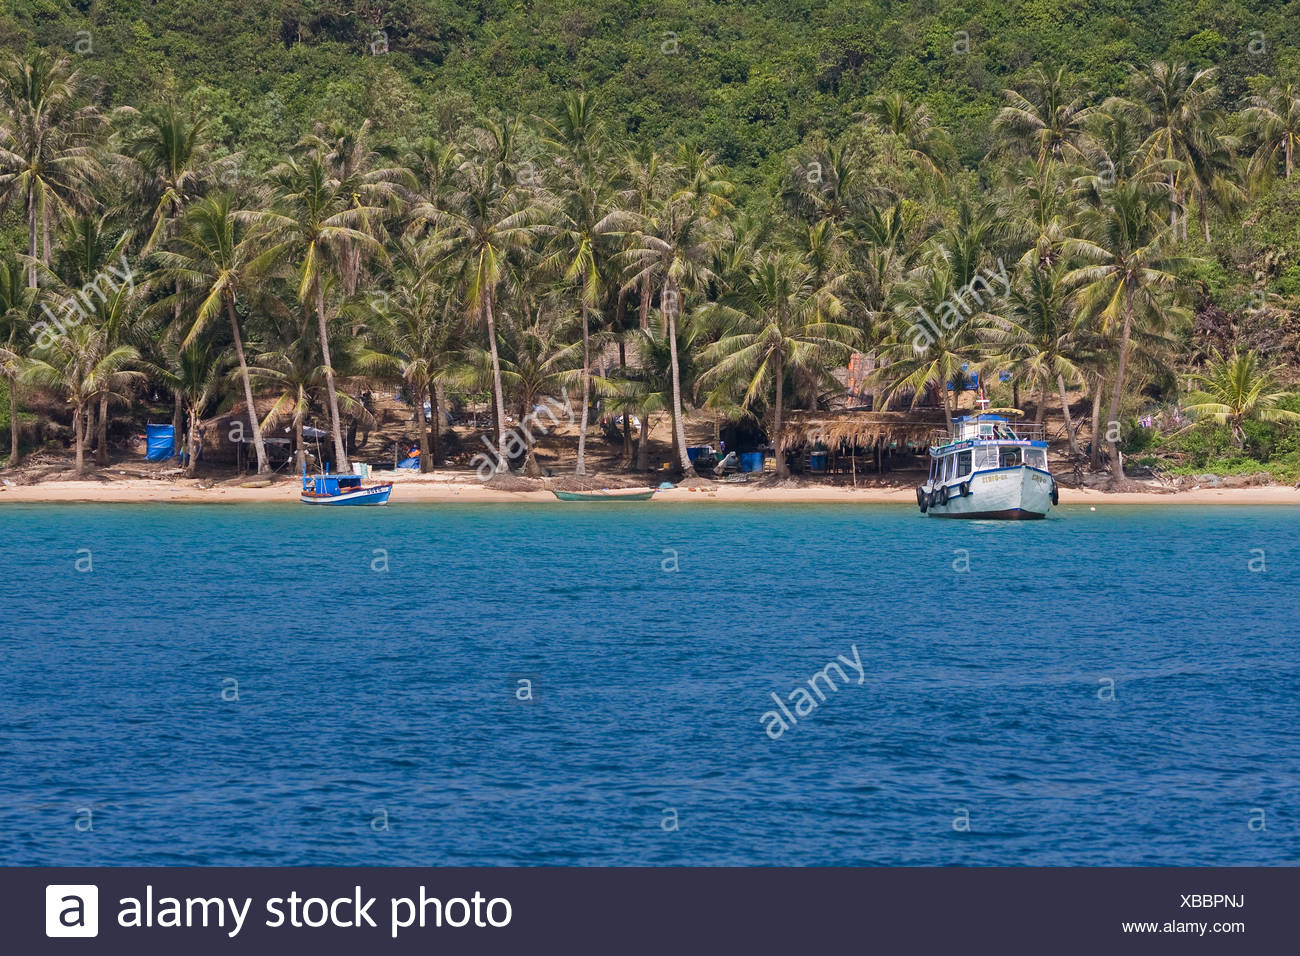 ambiance ambient beach dream dream-like heavenly holiday island like Long outdoor palm Phu Quoc sandy sea asia South-East - Stock Image